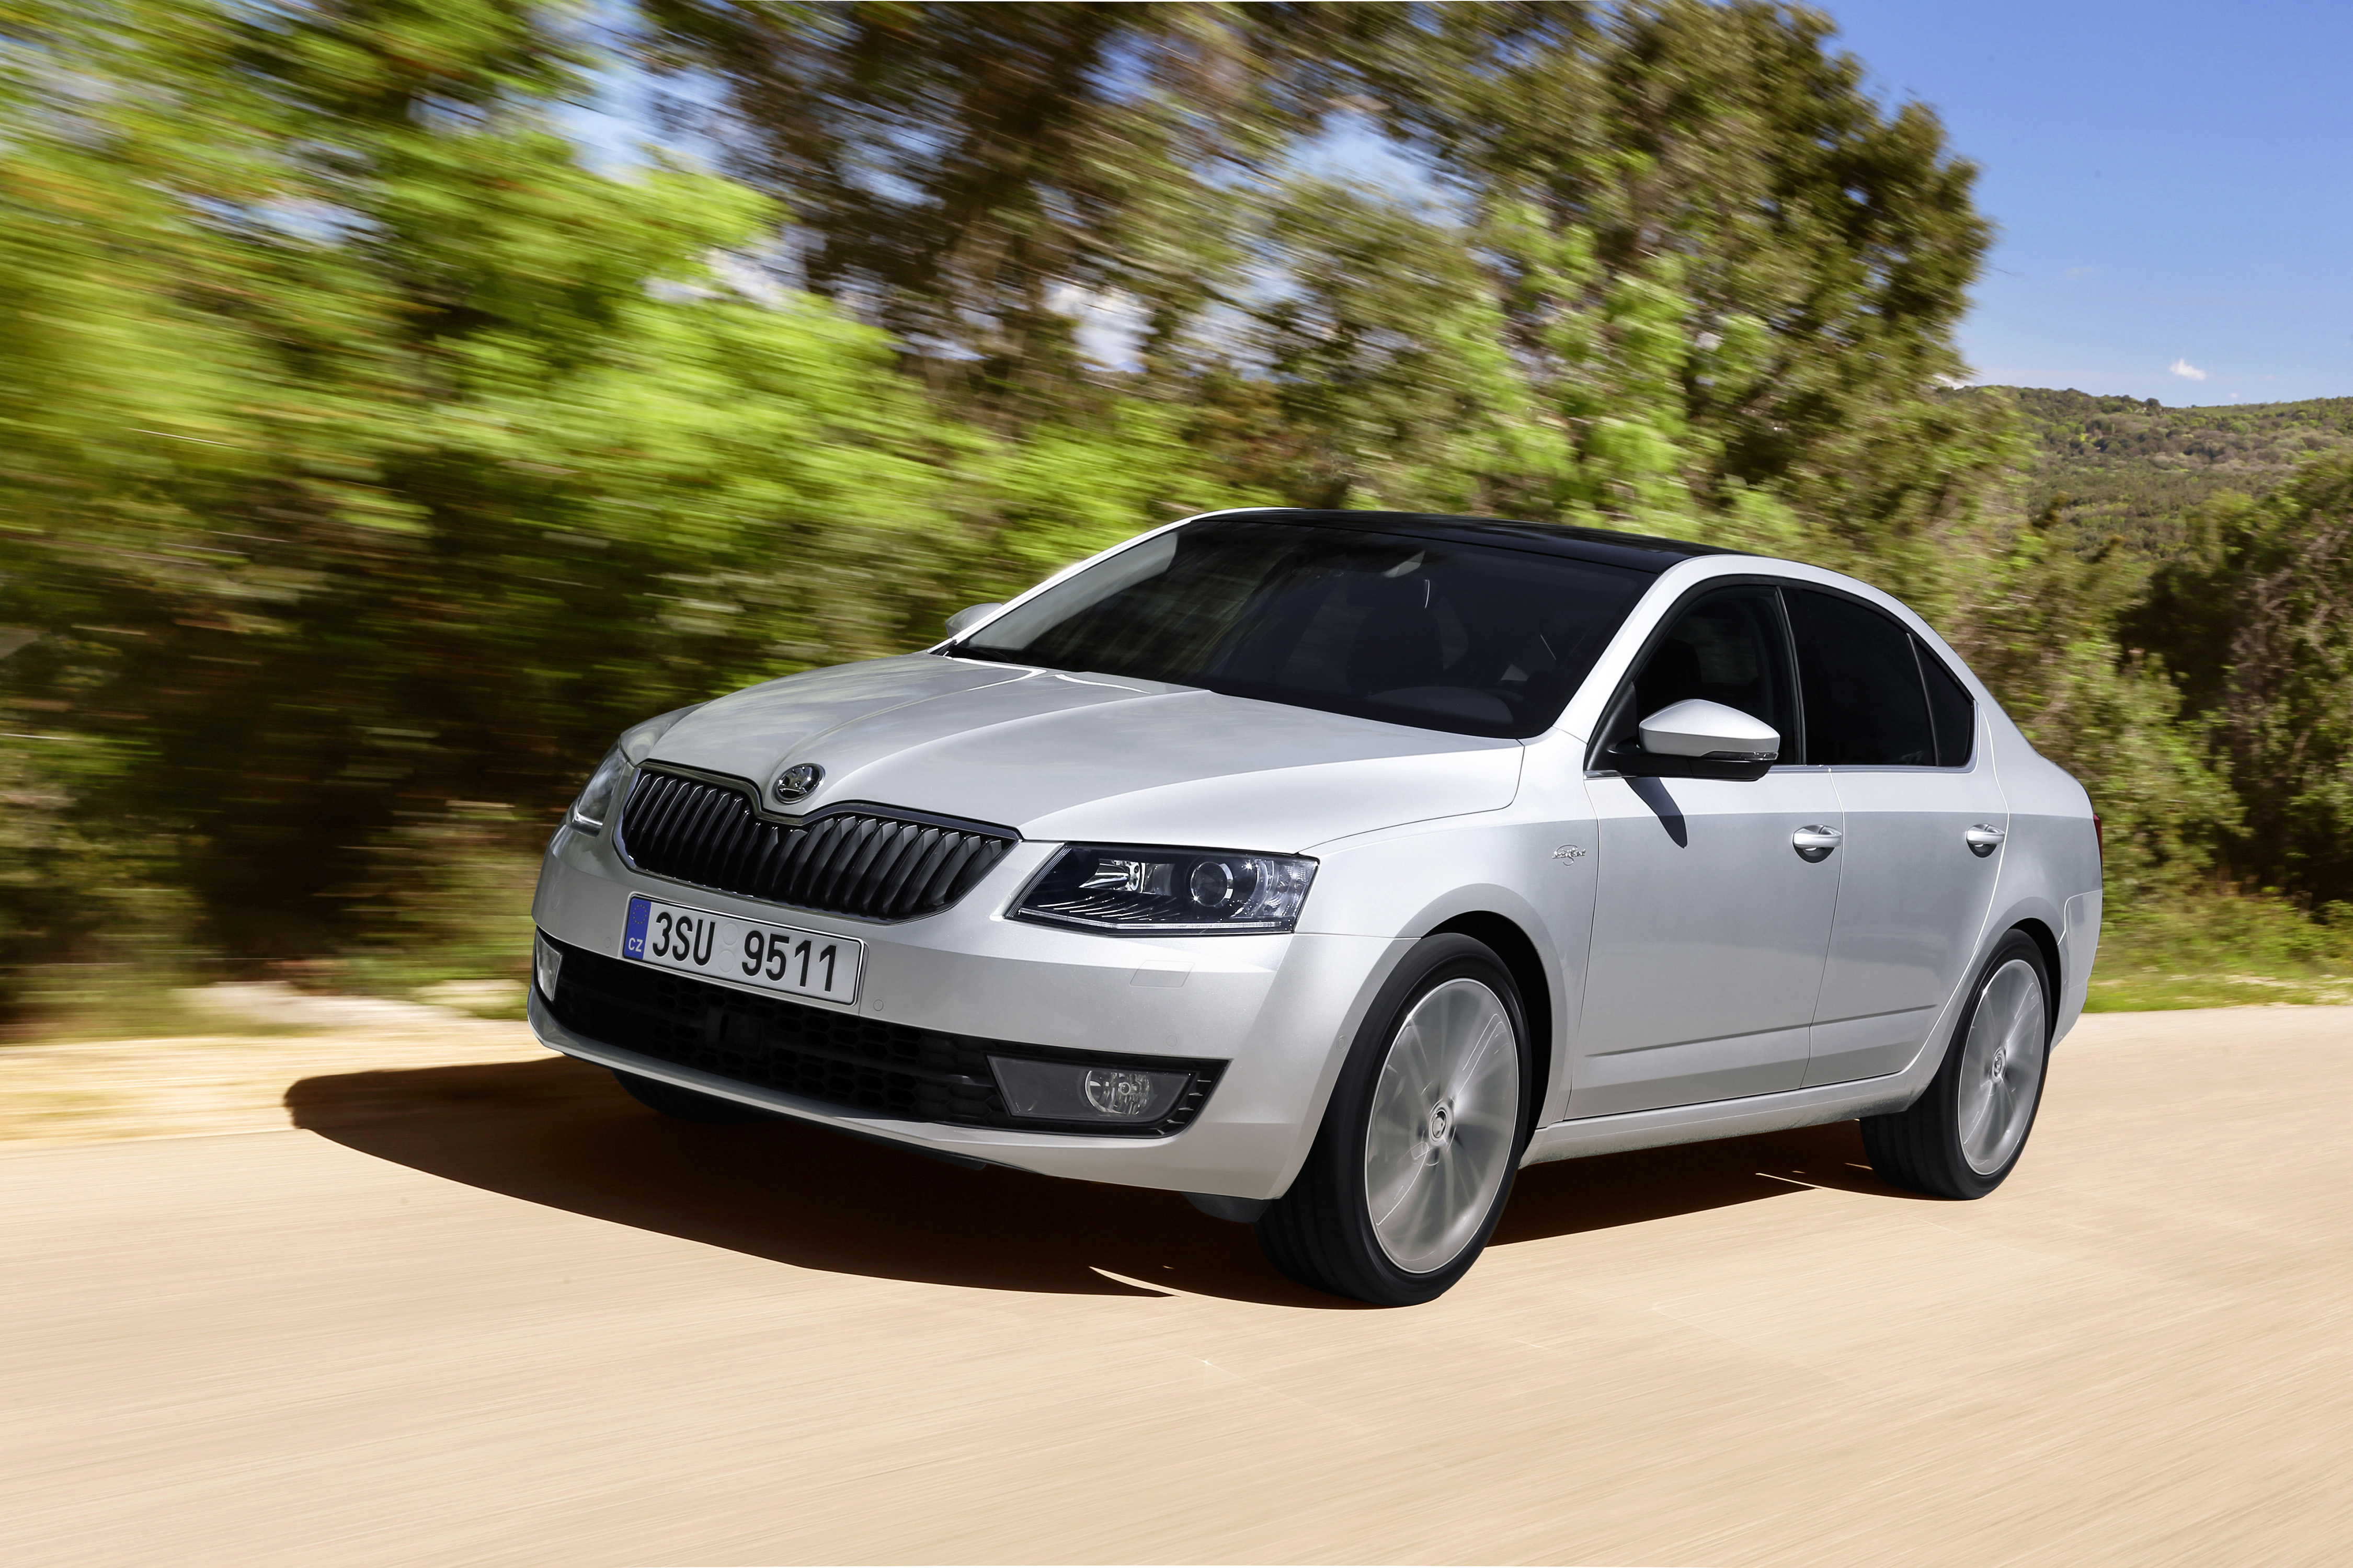 High Tech Update For The Skoda Octavia Compact Tsi And Modern